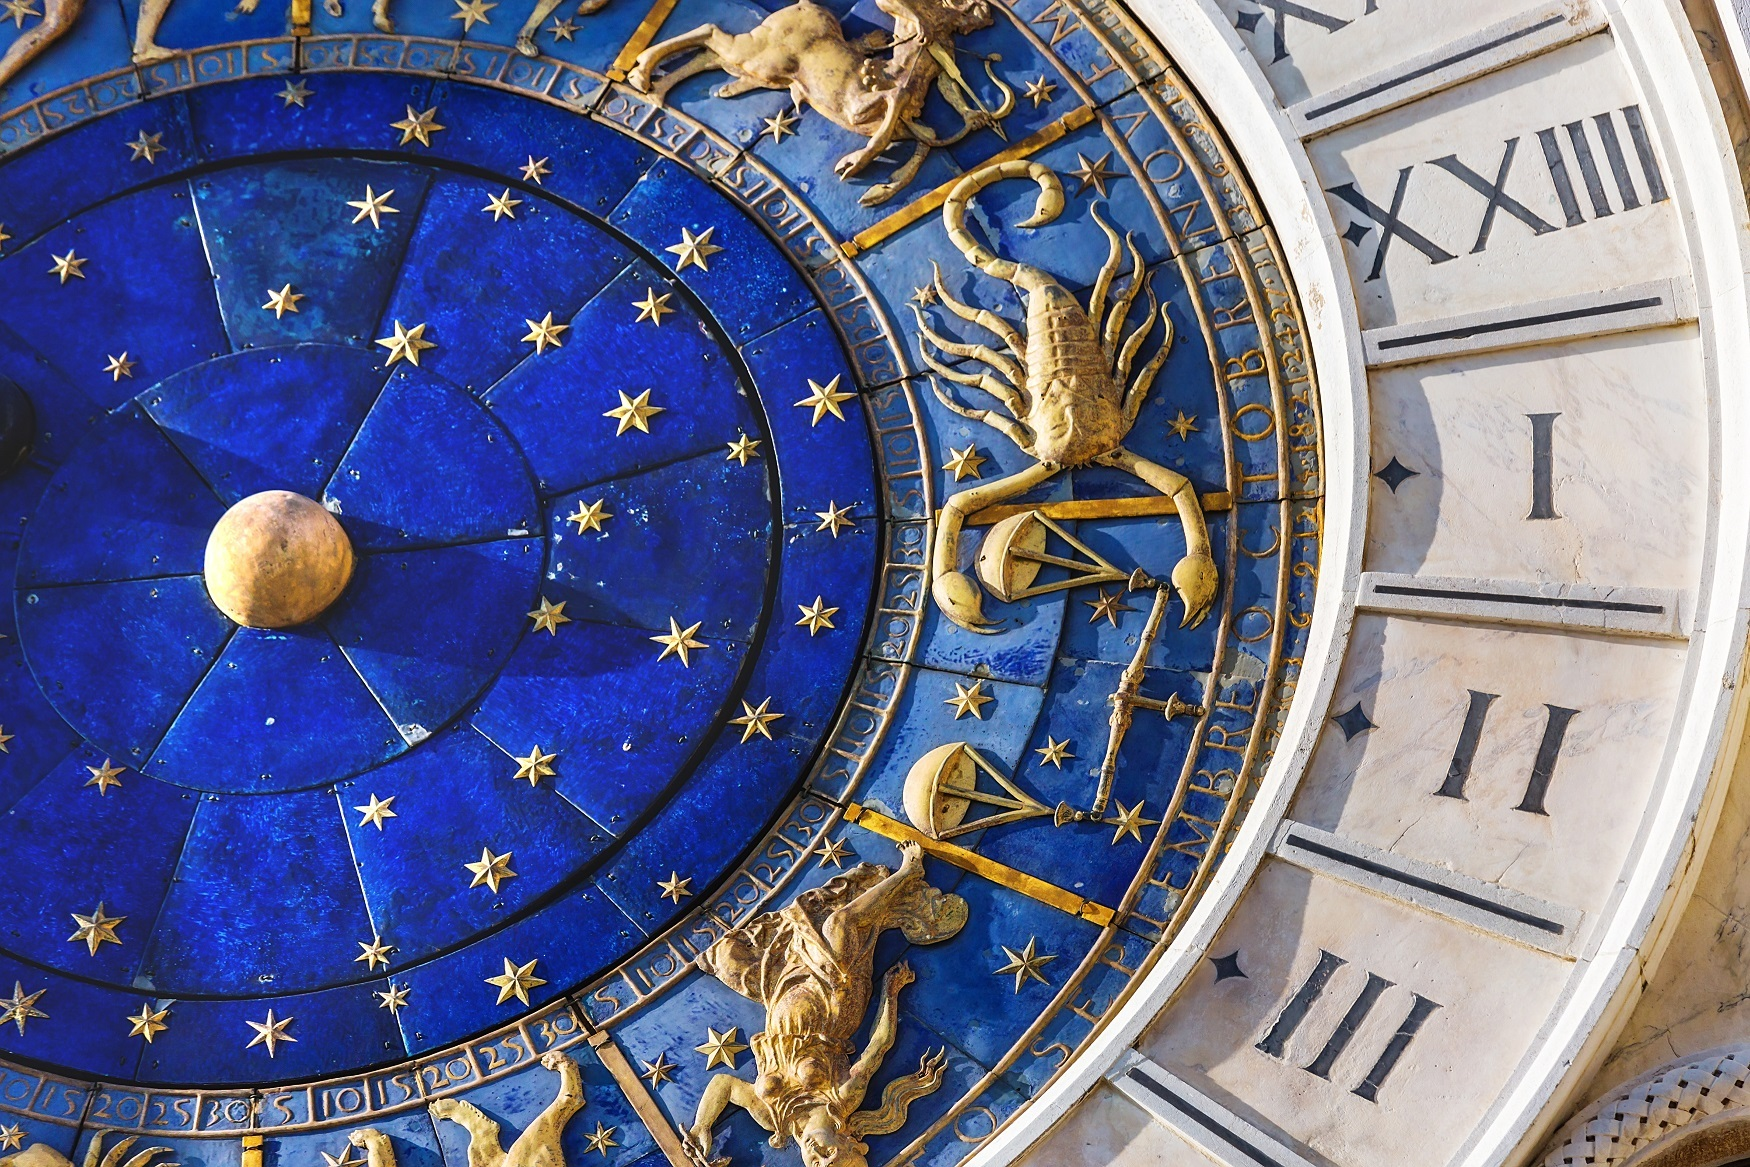 Zodiac signs on clock in Venice Italy